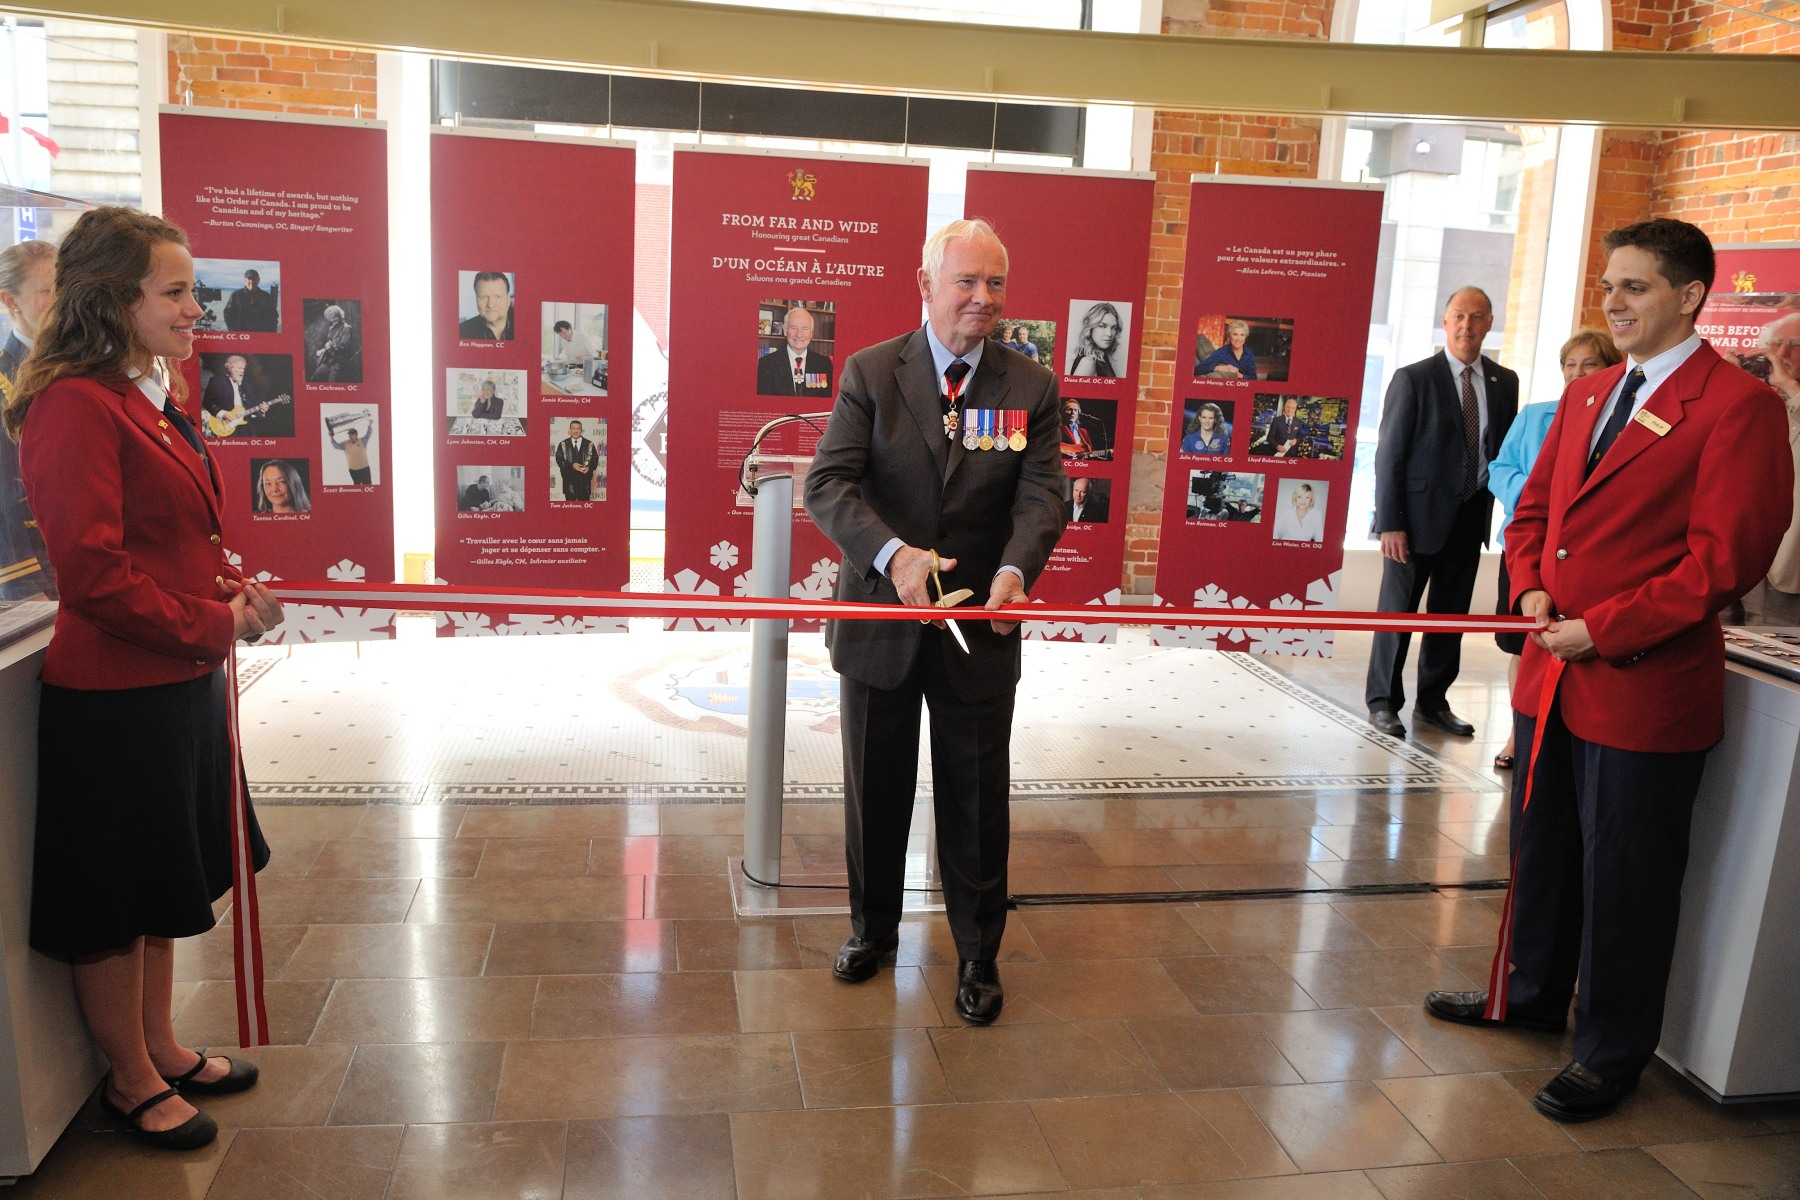 The ribbon cutting marked the official opening of the exhibit.